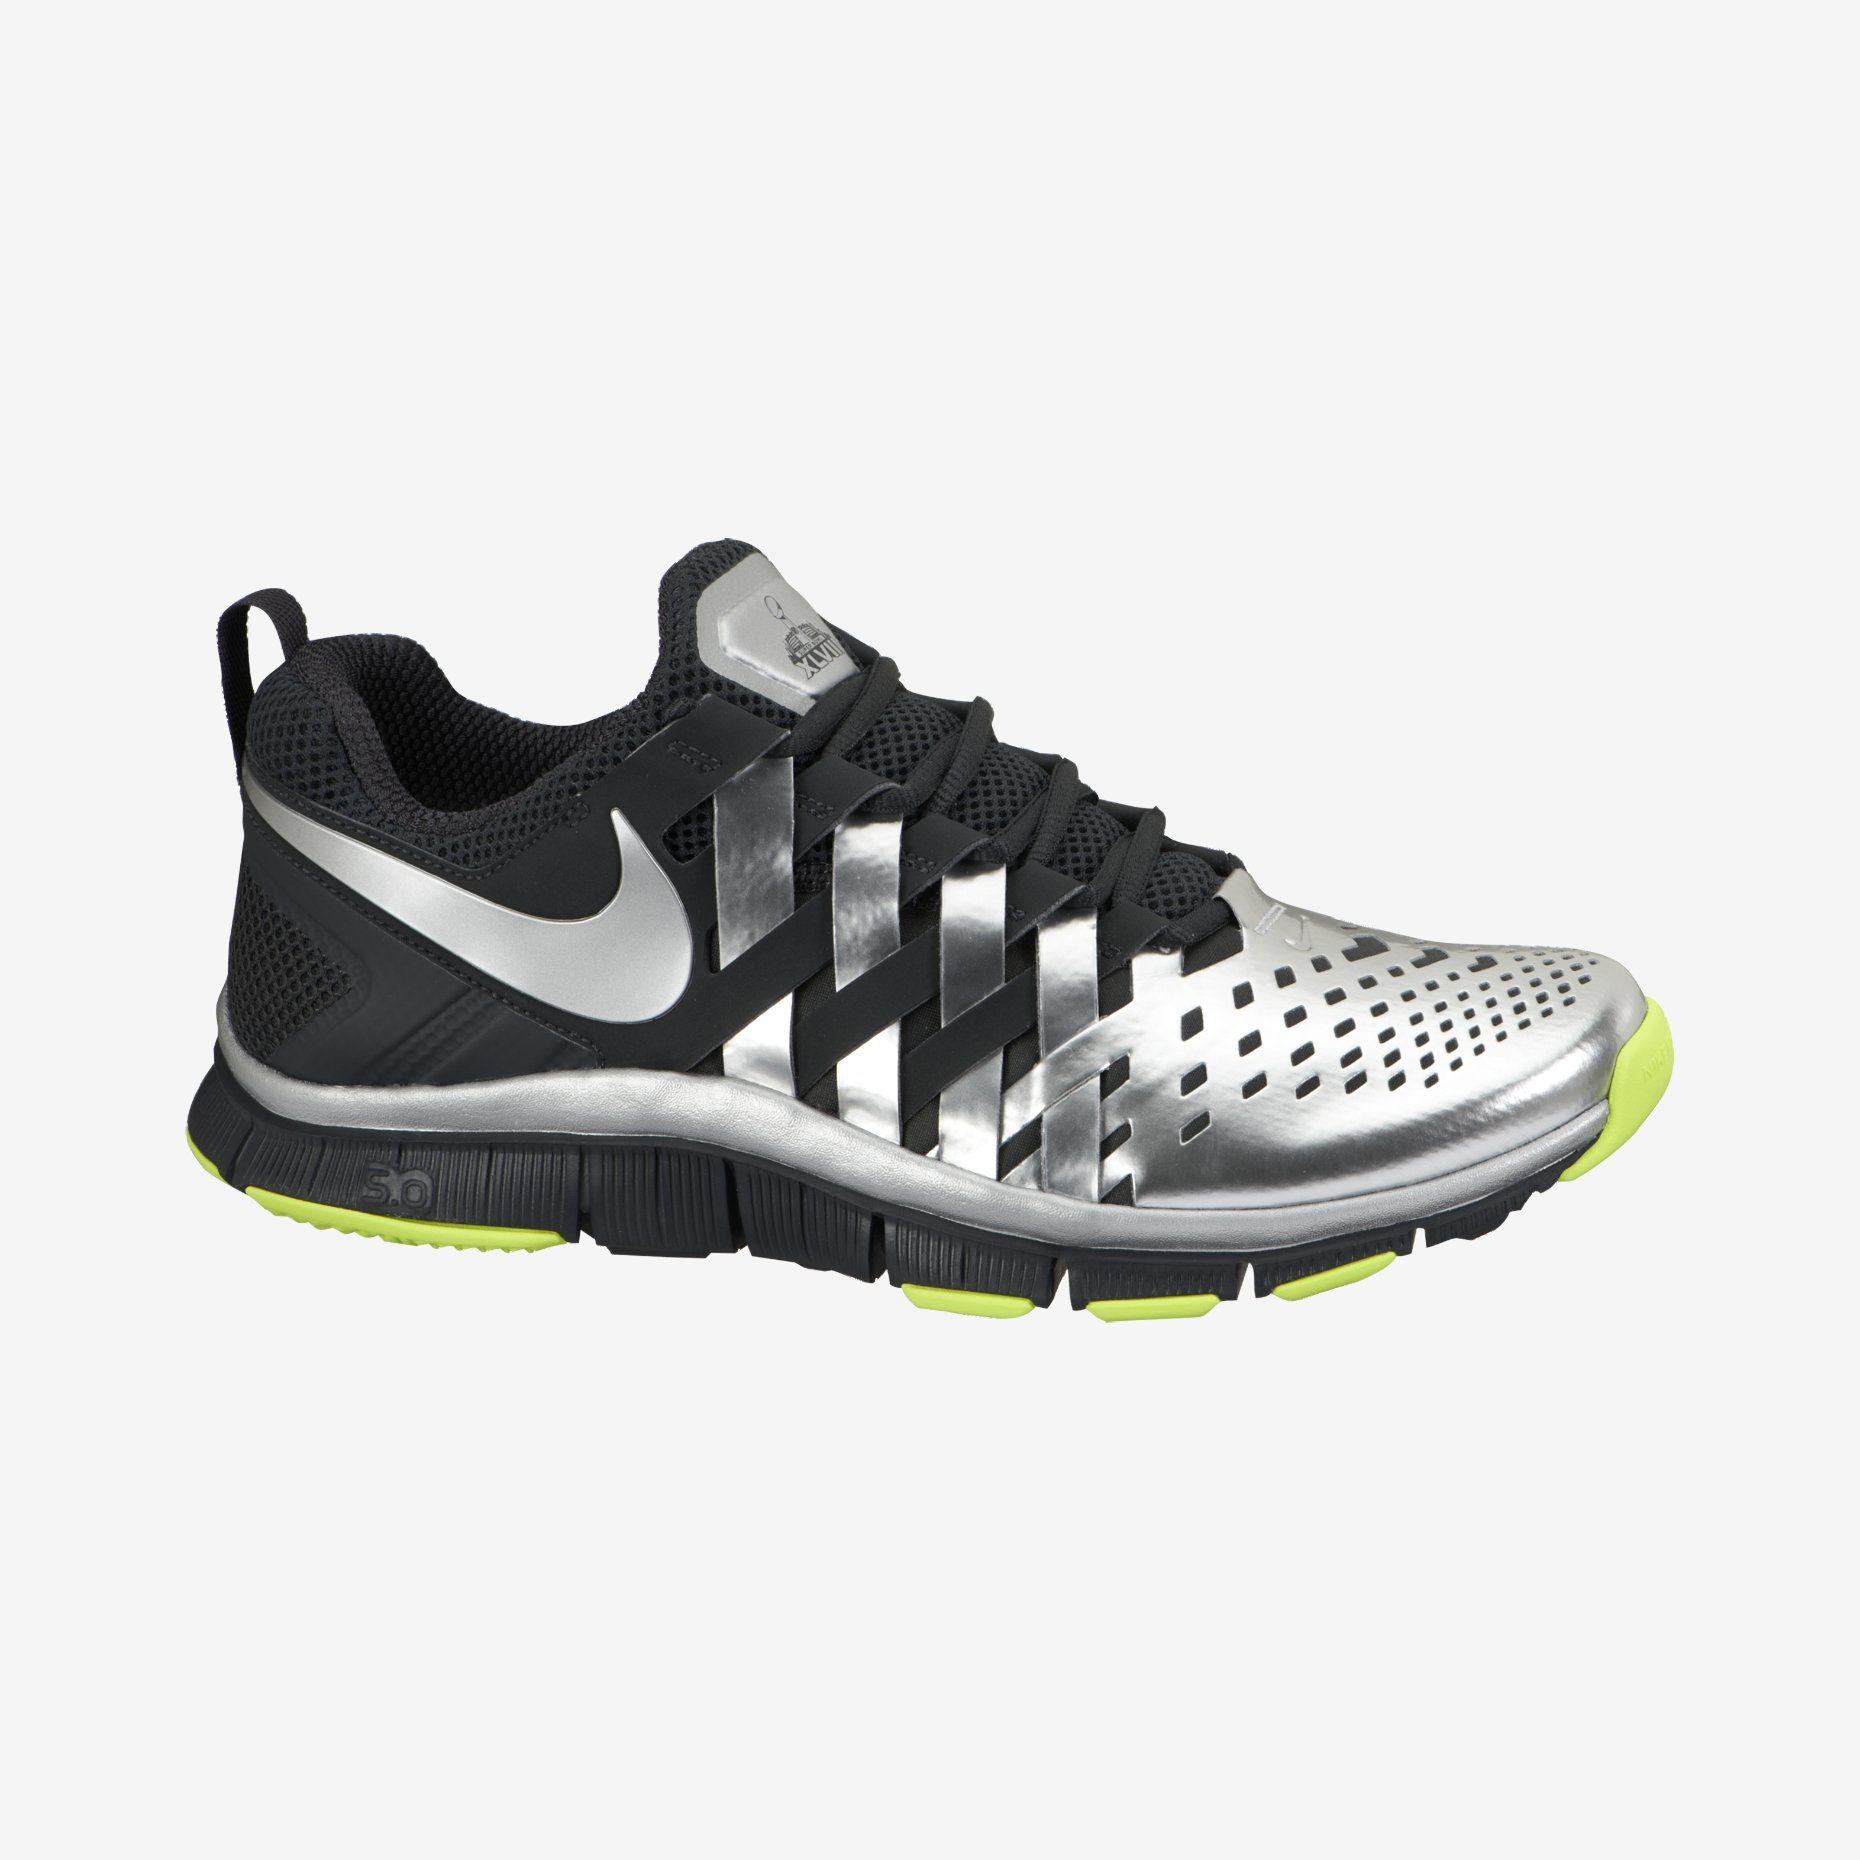 Nike Free Trainer 5.0 (Limited Edition) Men's Training Shoe - Go Seahawks